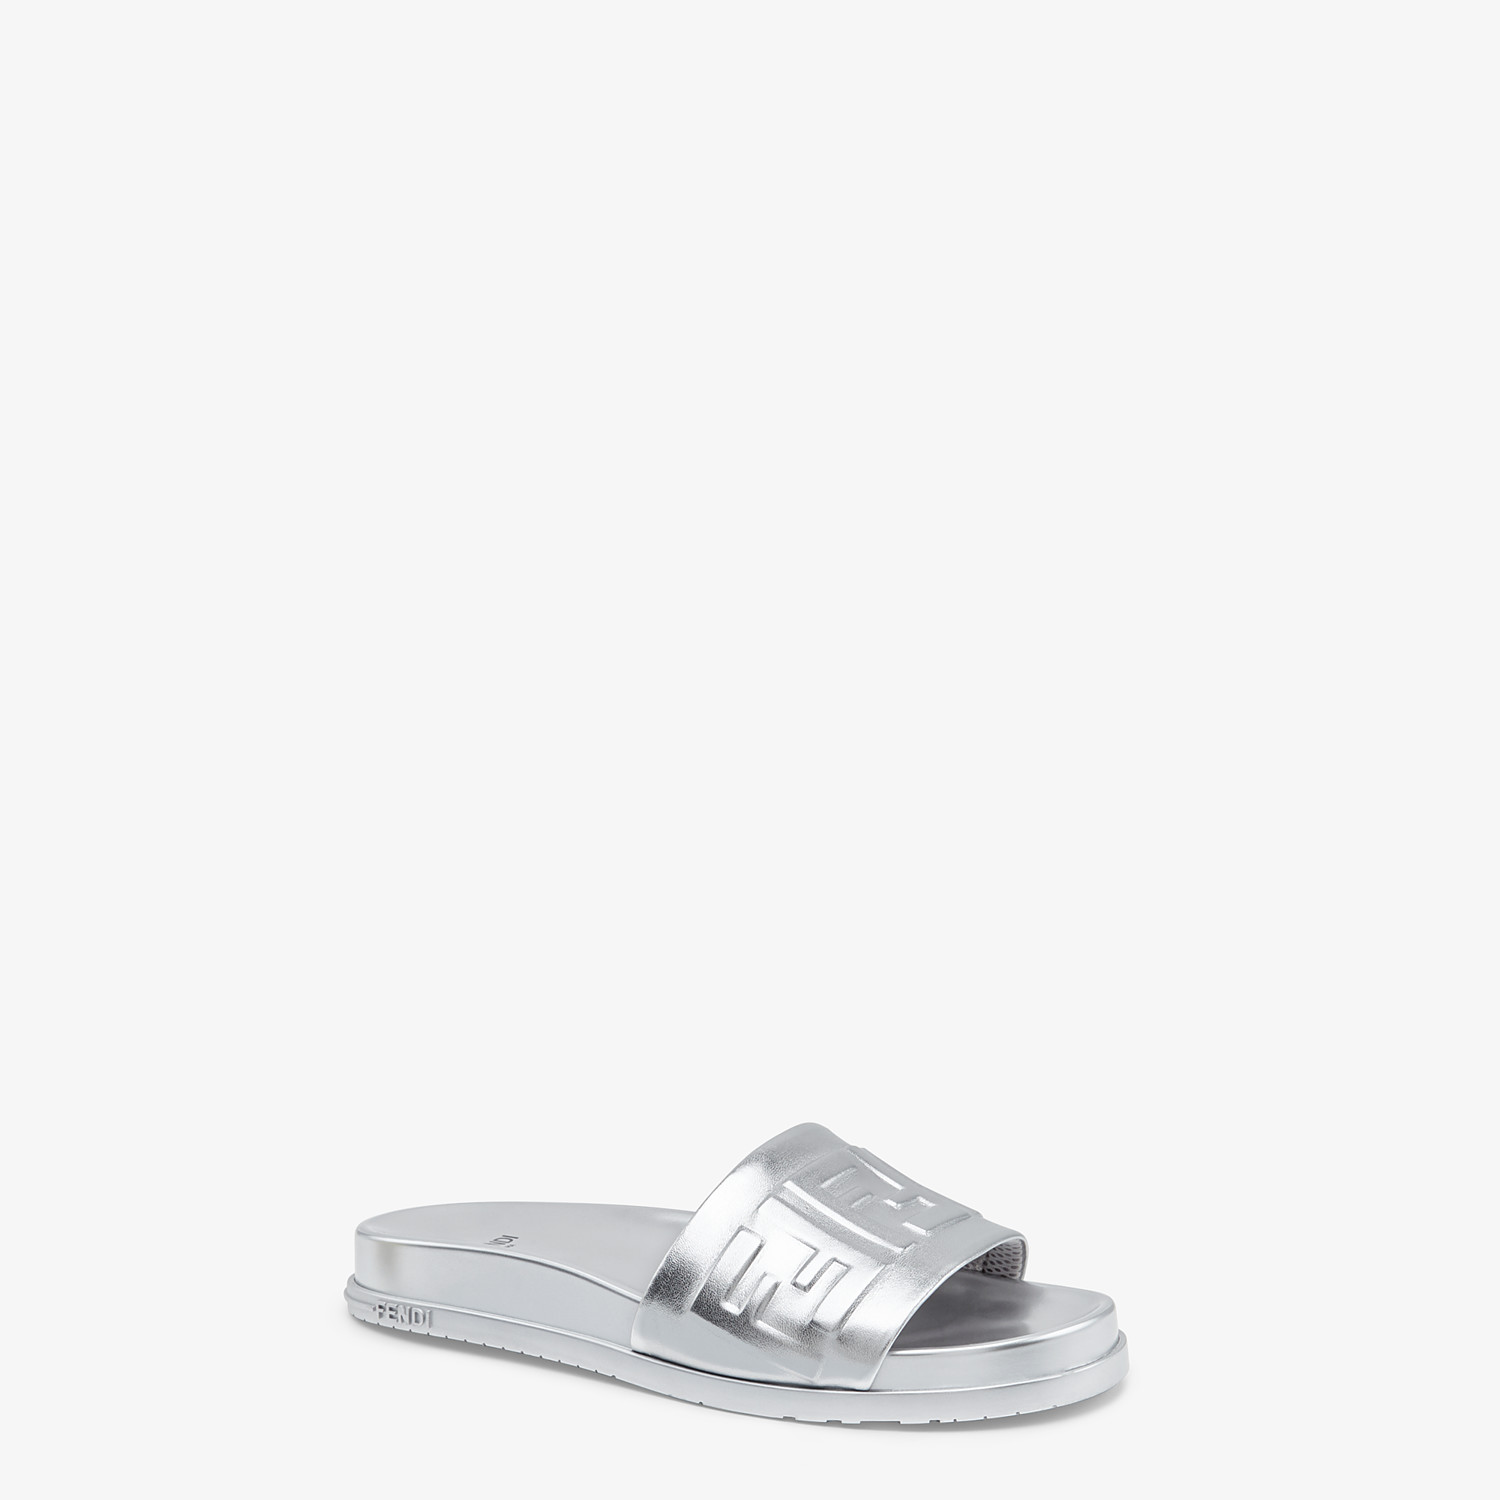 FENDI SANDALS - Silver nappa leather slides - view 2 detail